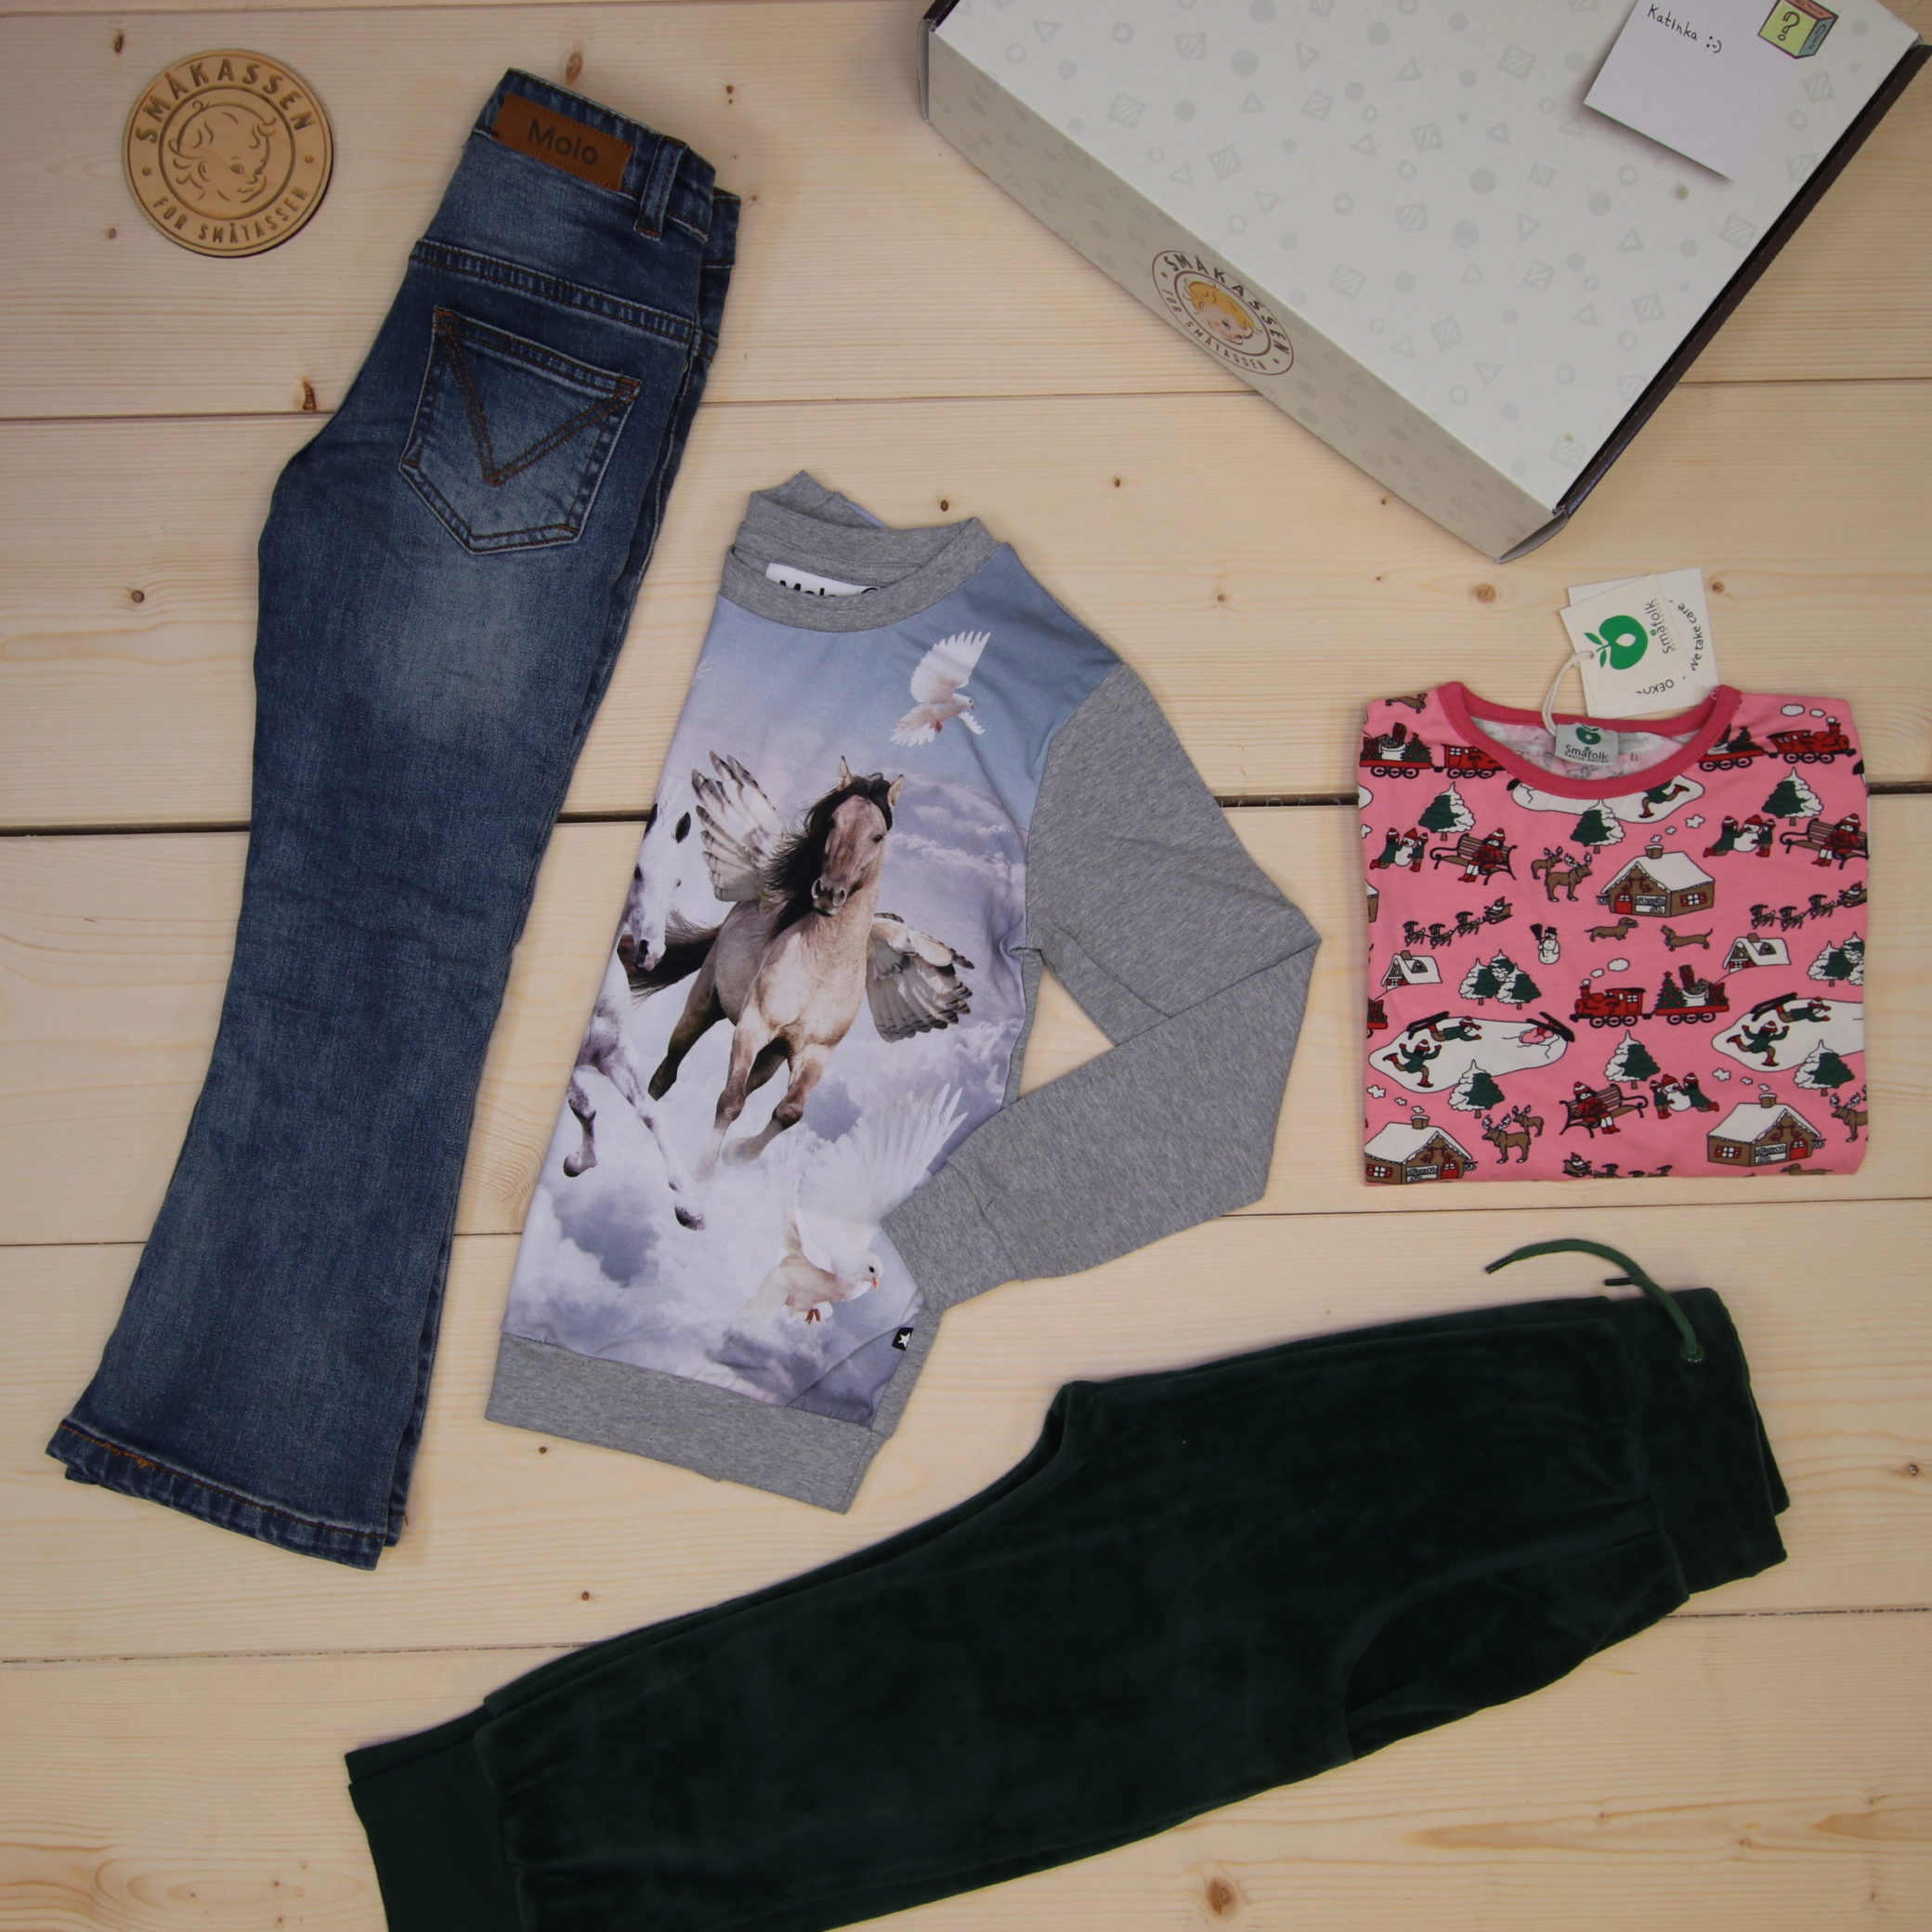 This is a 1500 NOK* Småkassen that we prepared for a girl  in the styles cute, cool, and colorful in size 116